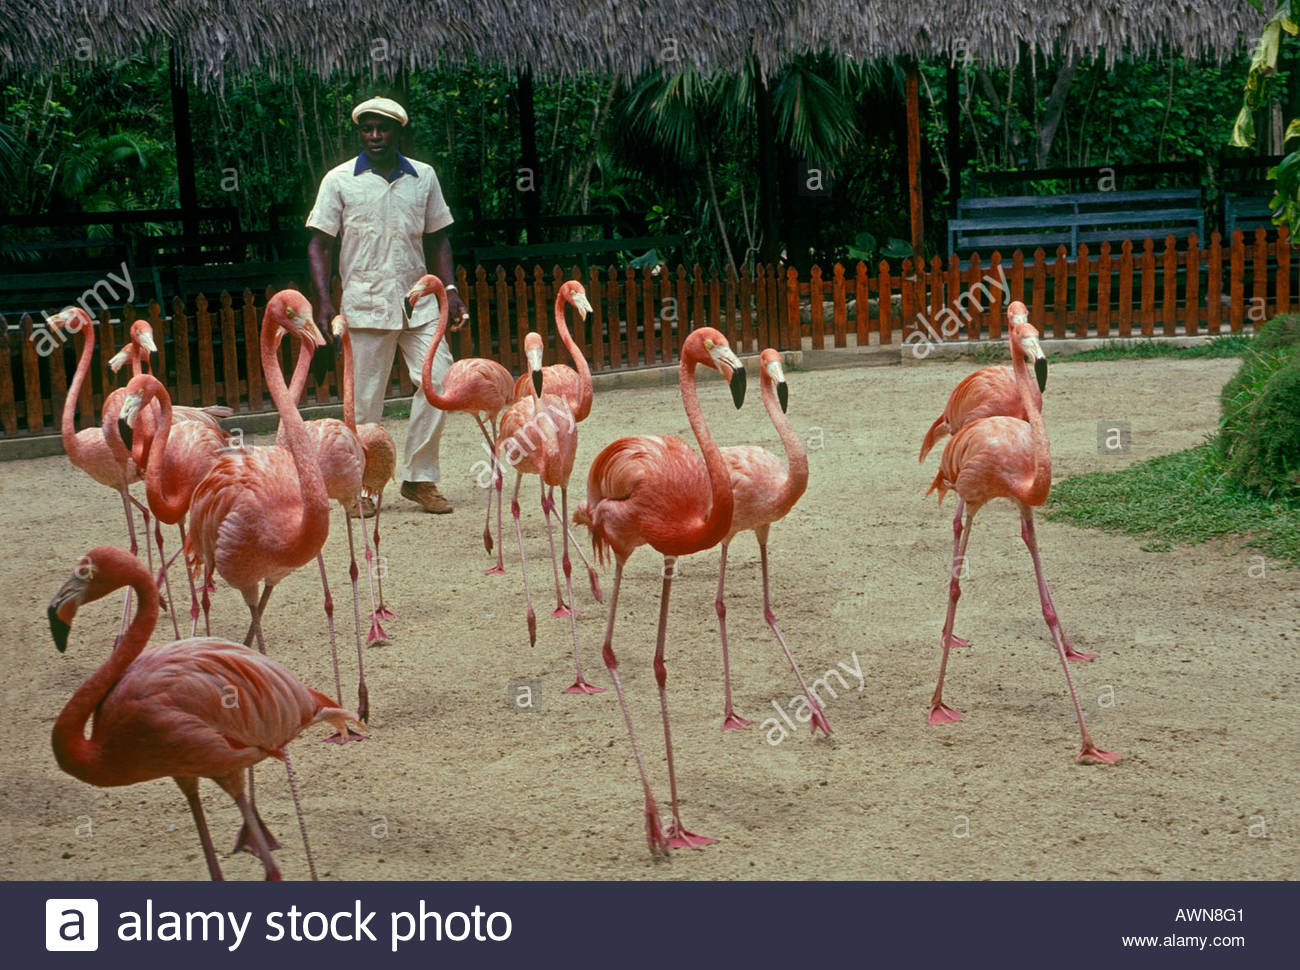 Ardastra Gardens, Zoo, and Conservation Centre New Providence and Paradise Islands, Bahamian people person man marching flamingos Ardastra Gardens Zoo ...